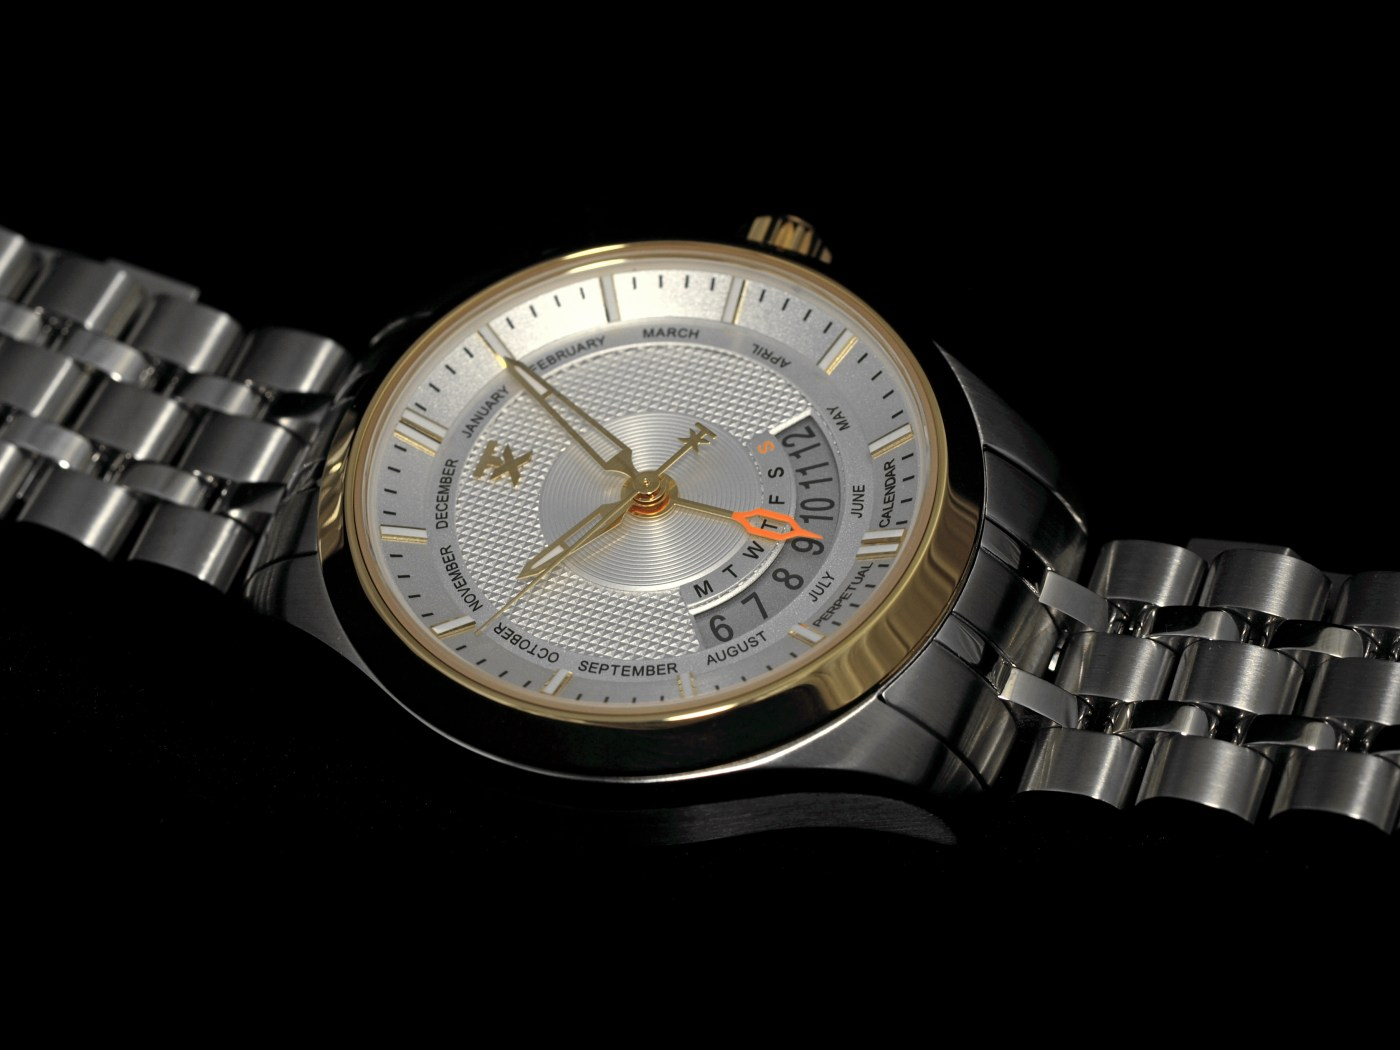 TX 400 Series Watch Perpetual Weekly Calendar